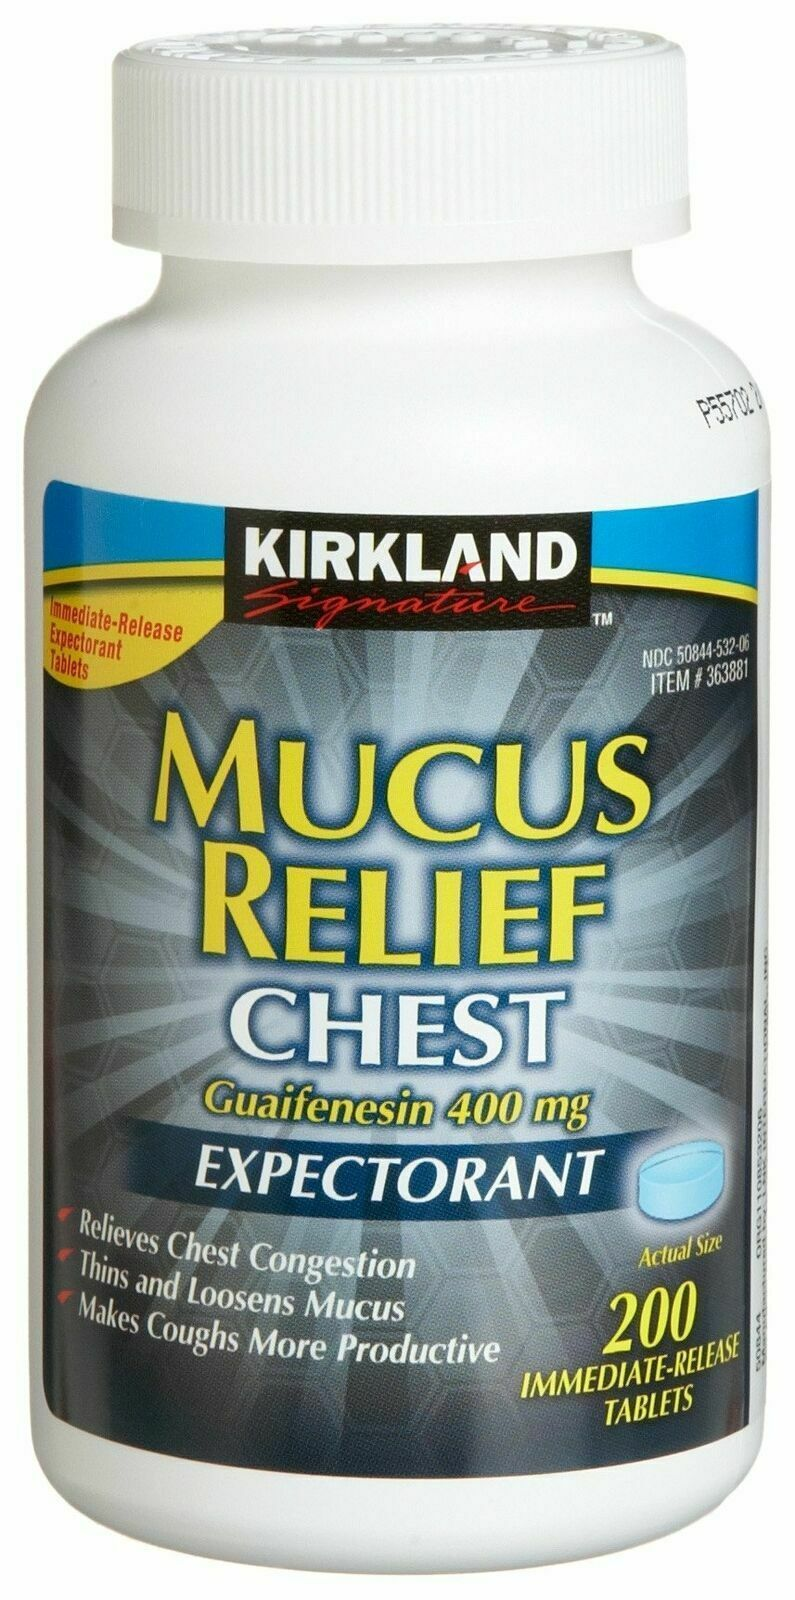 Primary image for Kirkland Signature Mucus Relief Chest Expectorant - 200 Tablets